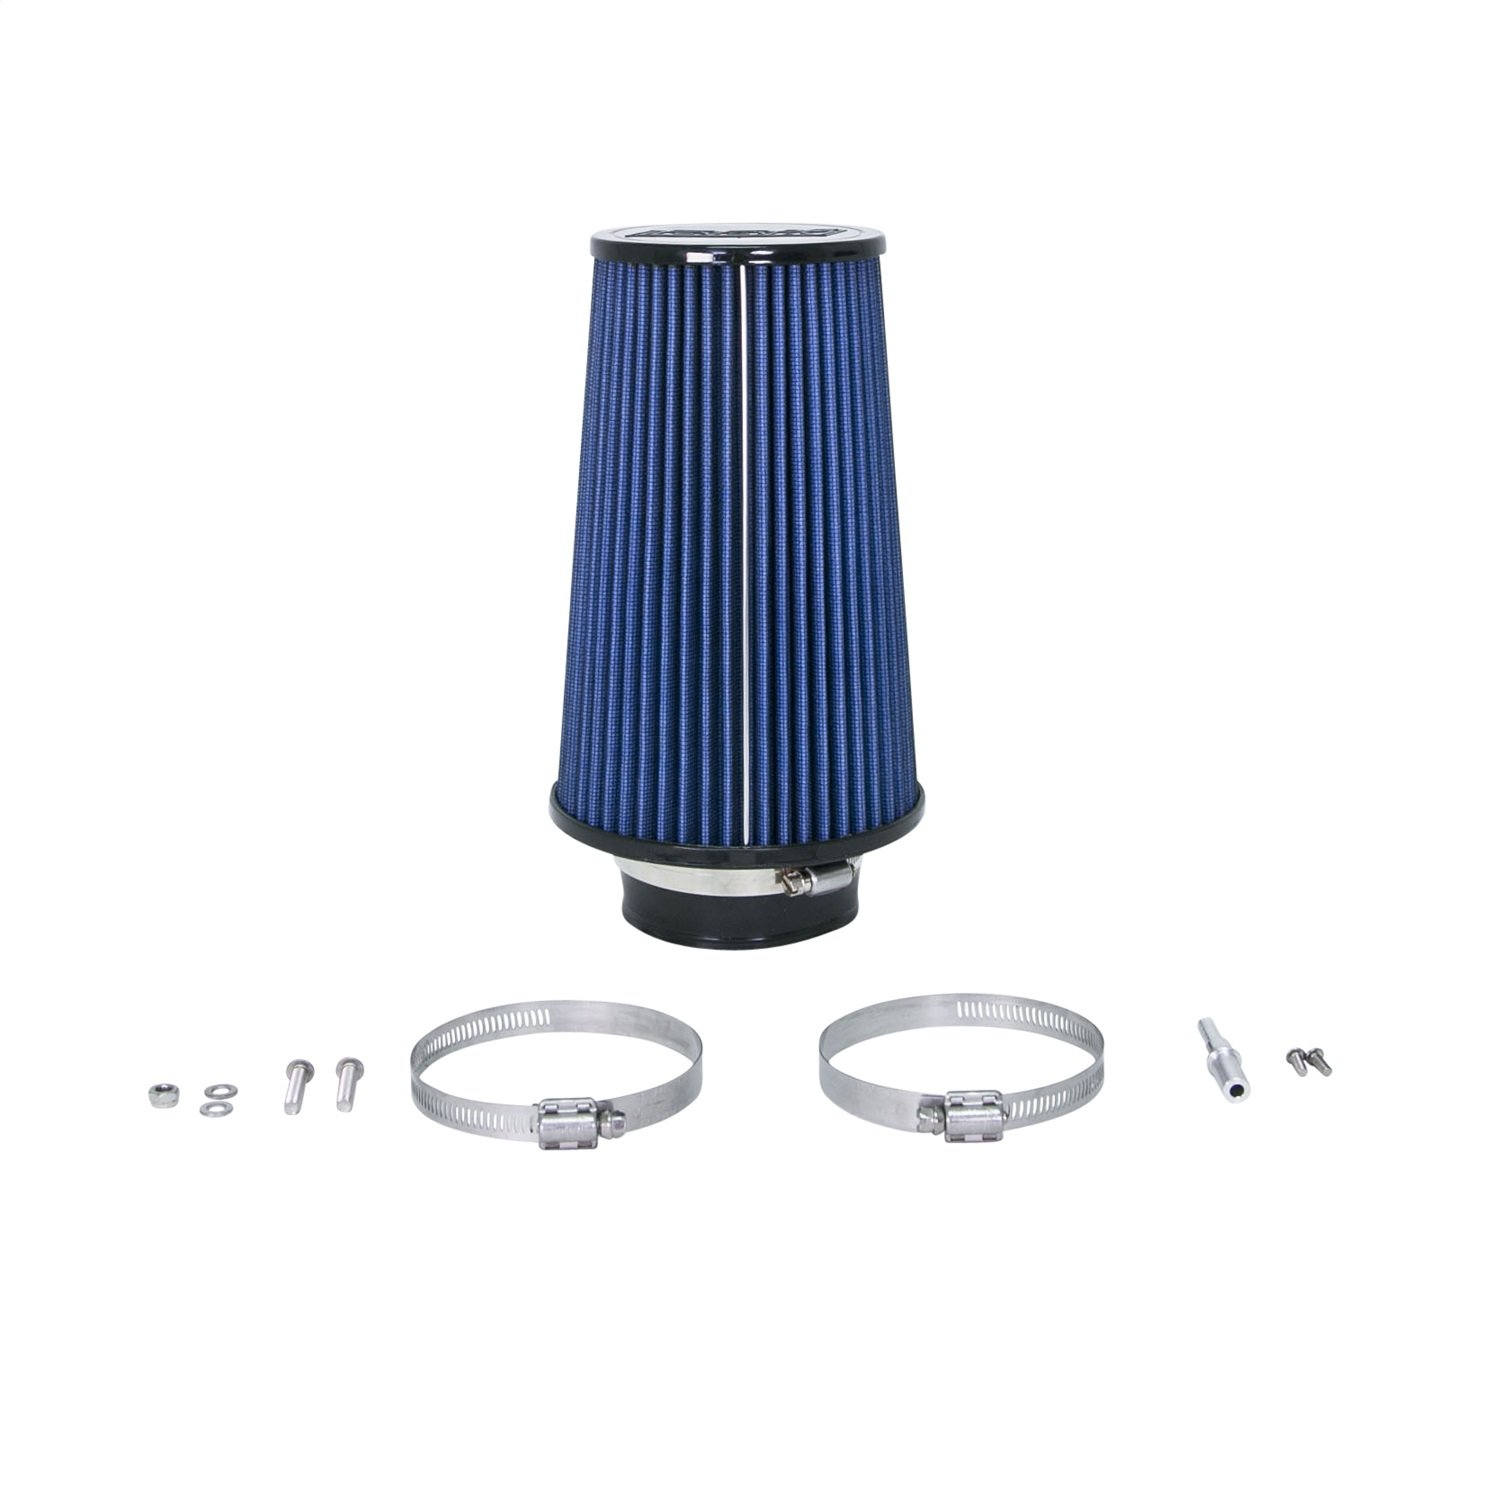 BBK 1744 Cold Air Intake System - Power Plus Series Performance Kit For Ford 5.4L F Series Truck, Expedition - Chrome Finish